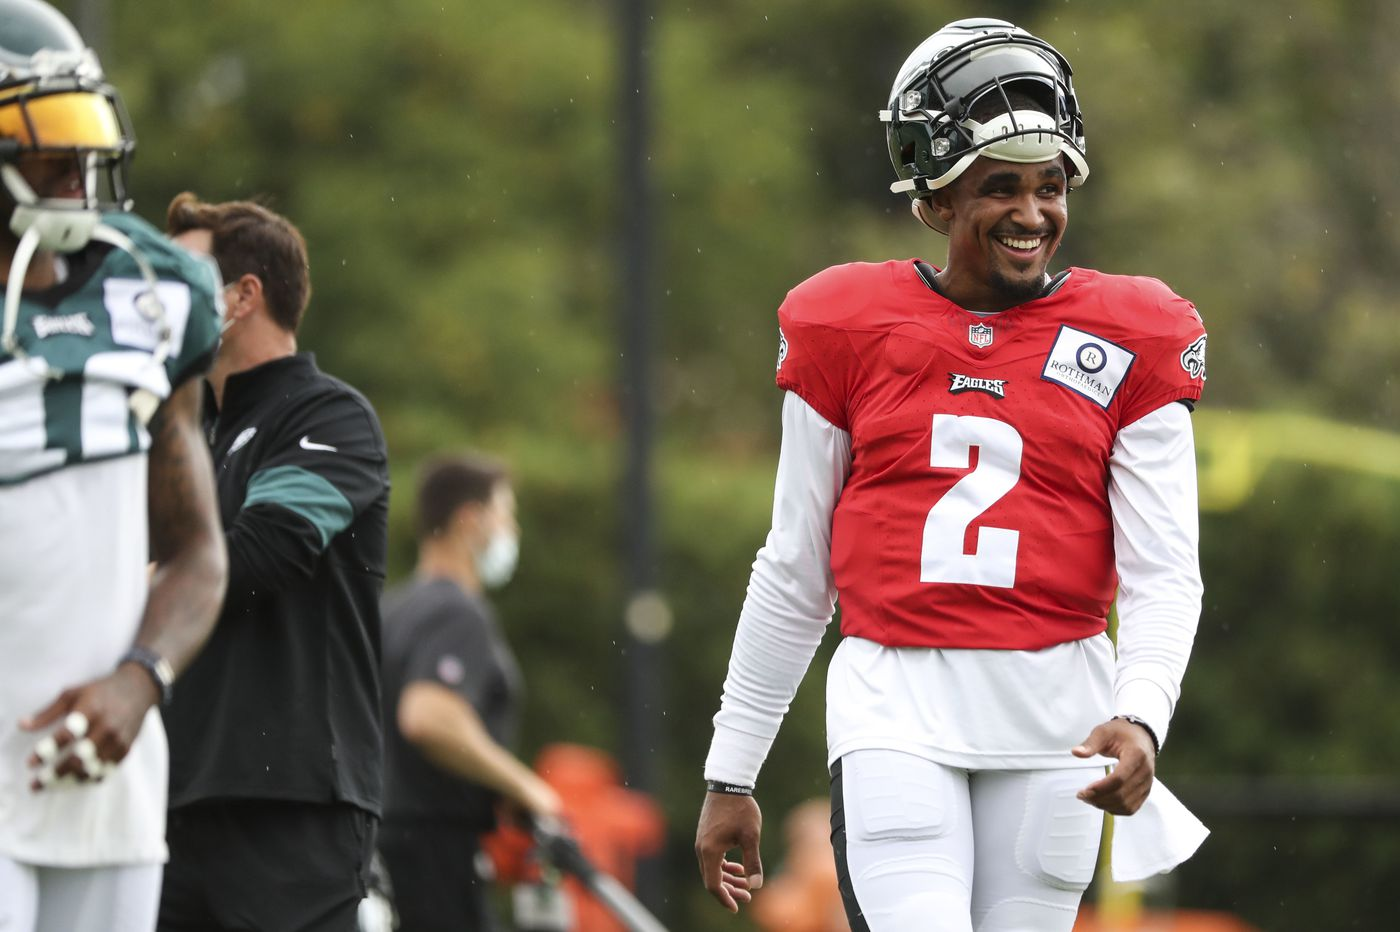 Eagles 2020: Jalen Hurts, Darius Slay, Jason Peters present the 3 most intriguing questions   Marcus Hayes